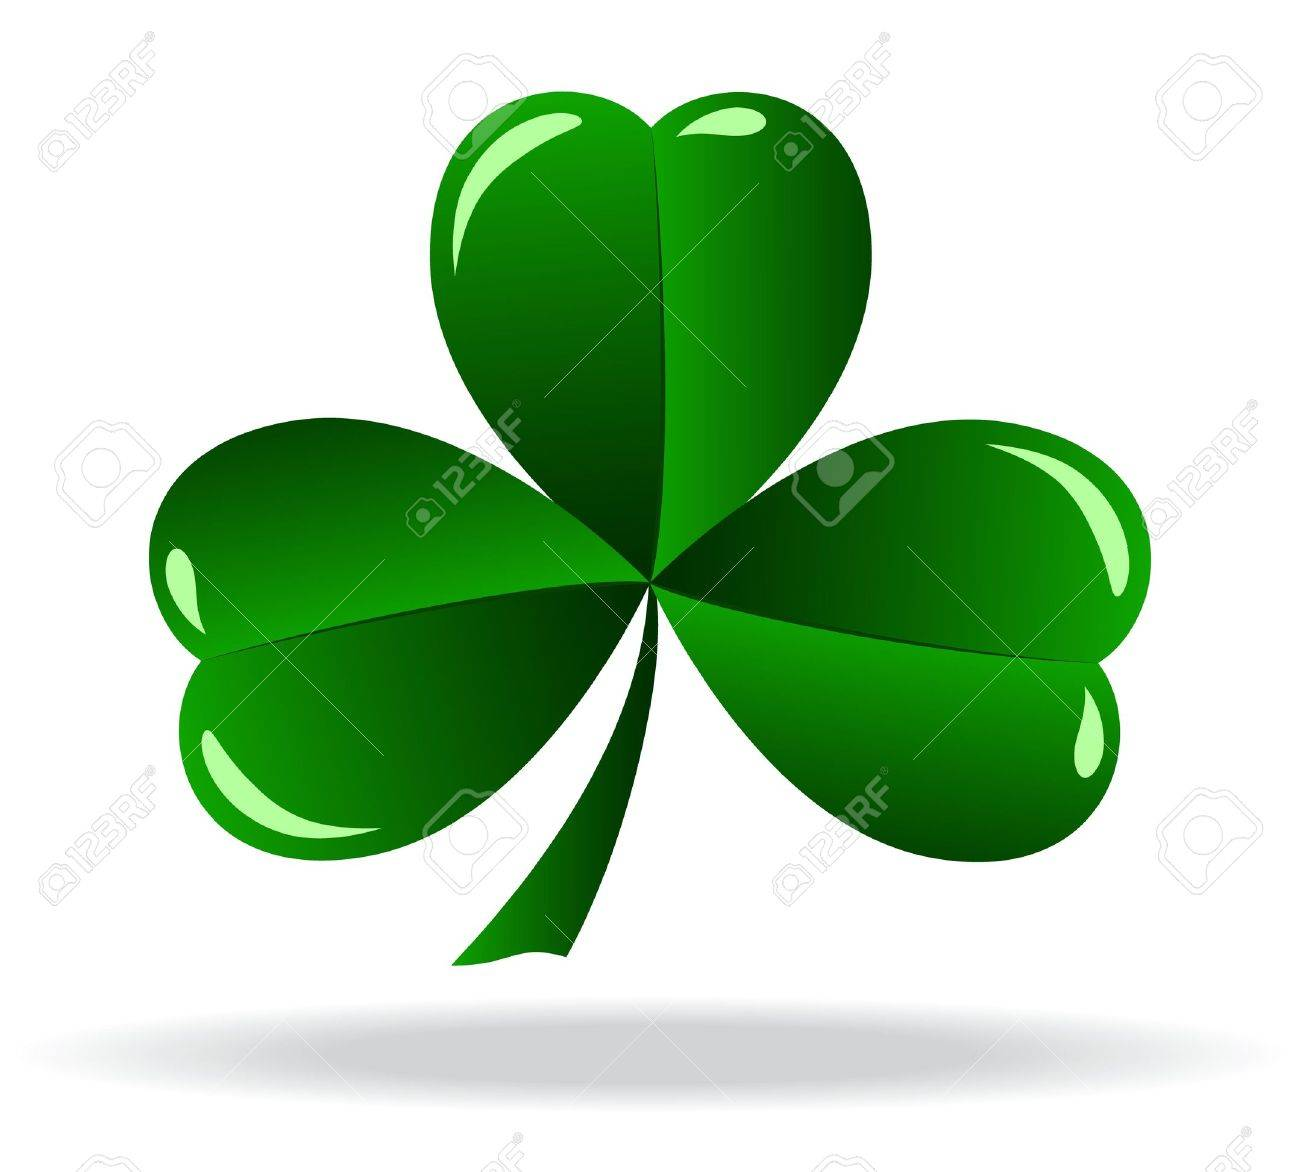 green shamrock as a symbol of st patricks day isolated on white rh 123rf com shamrock vector image shamrock vector art